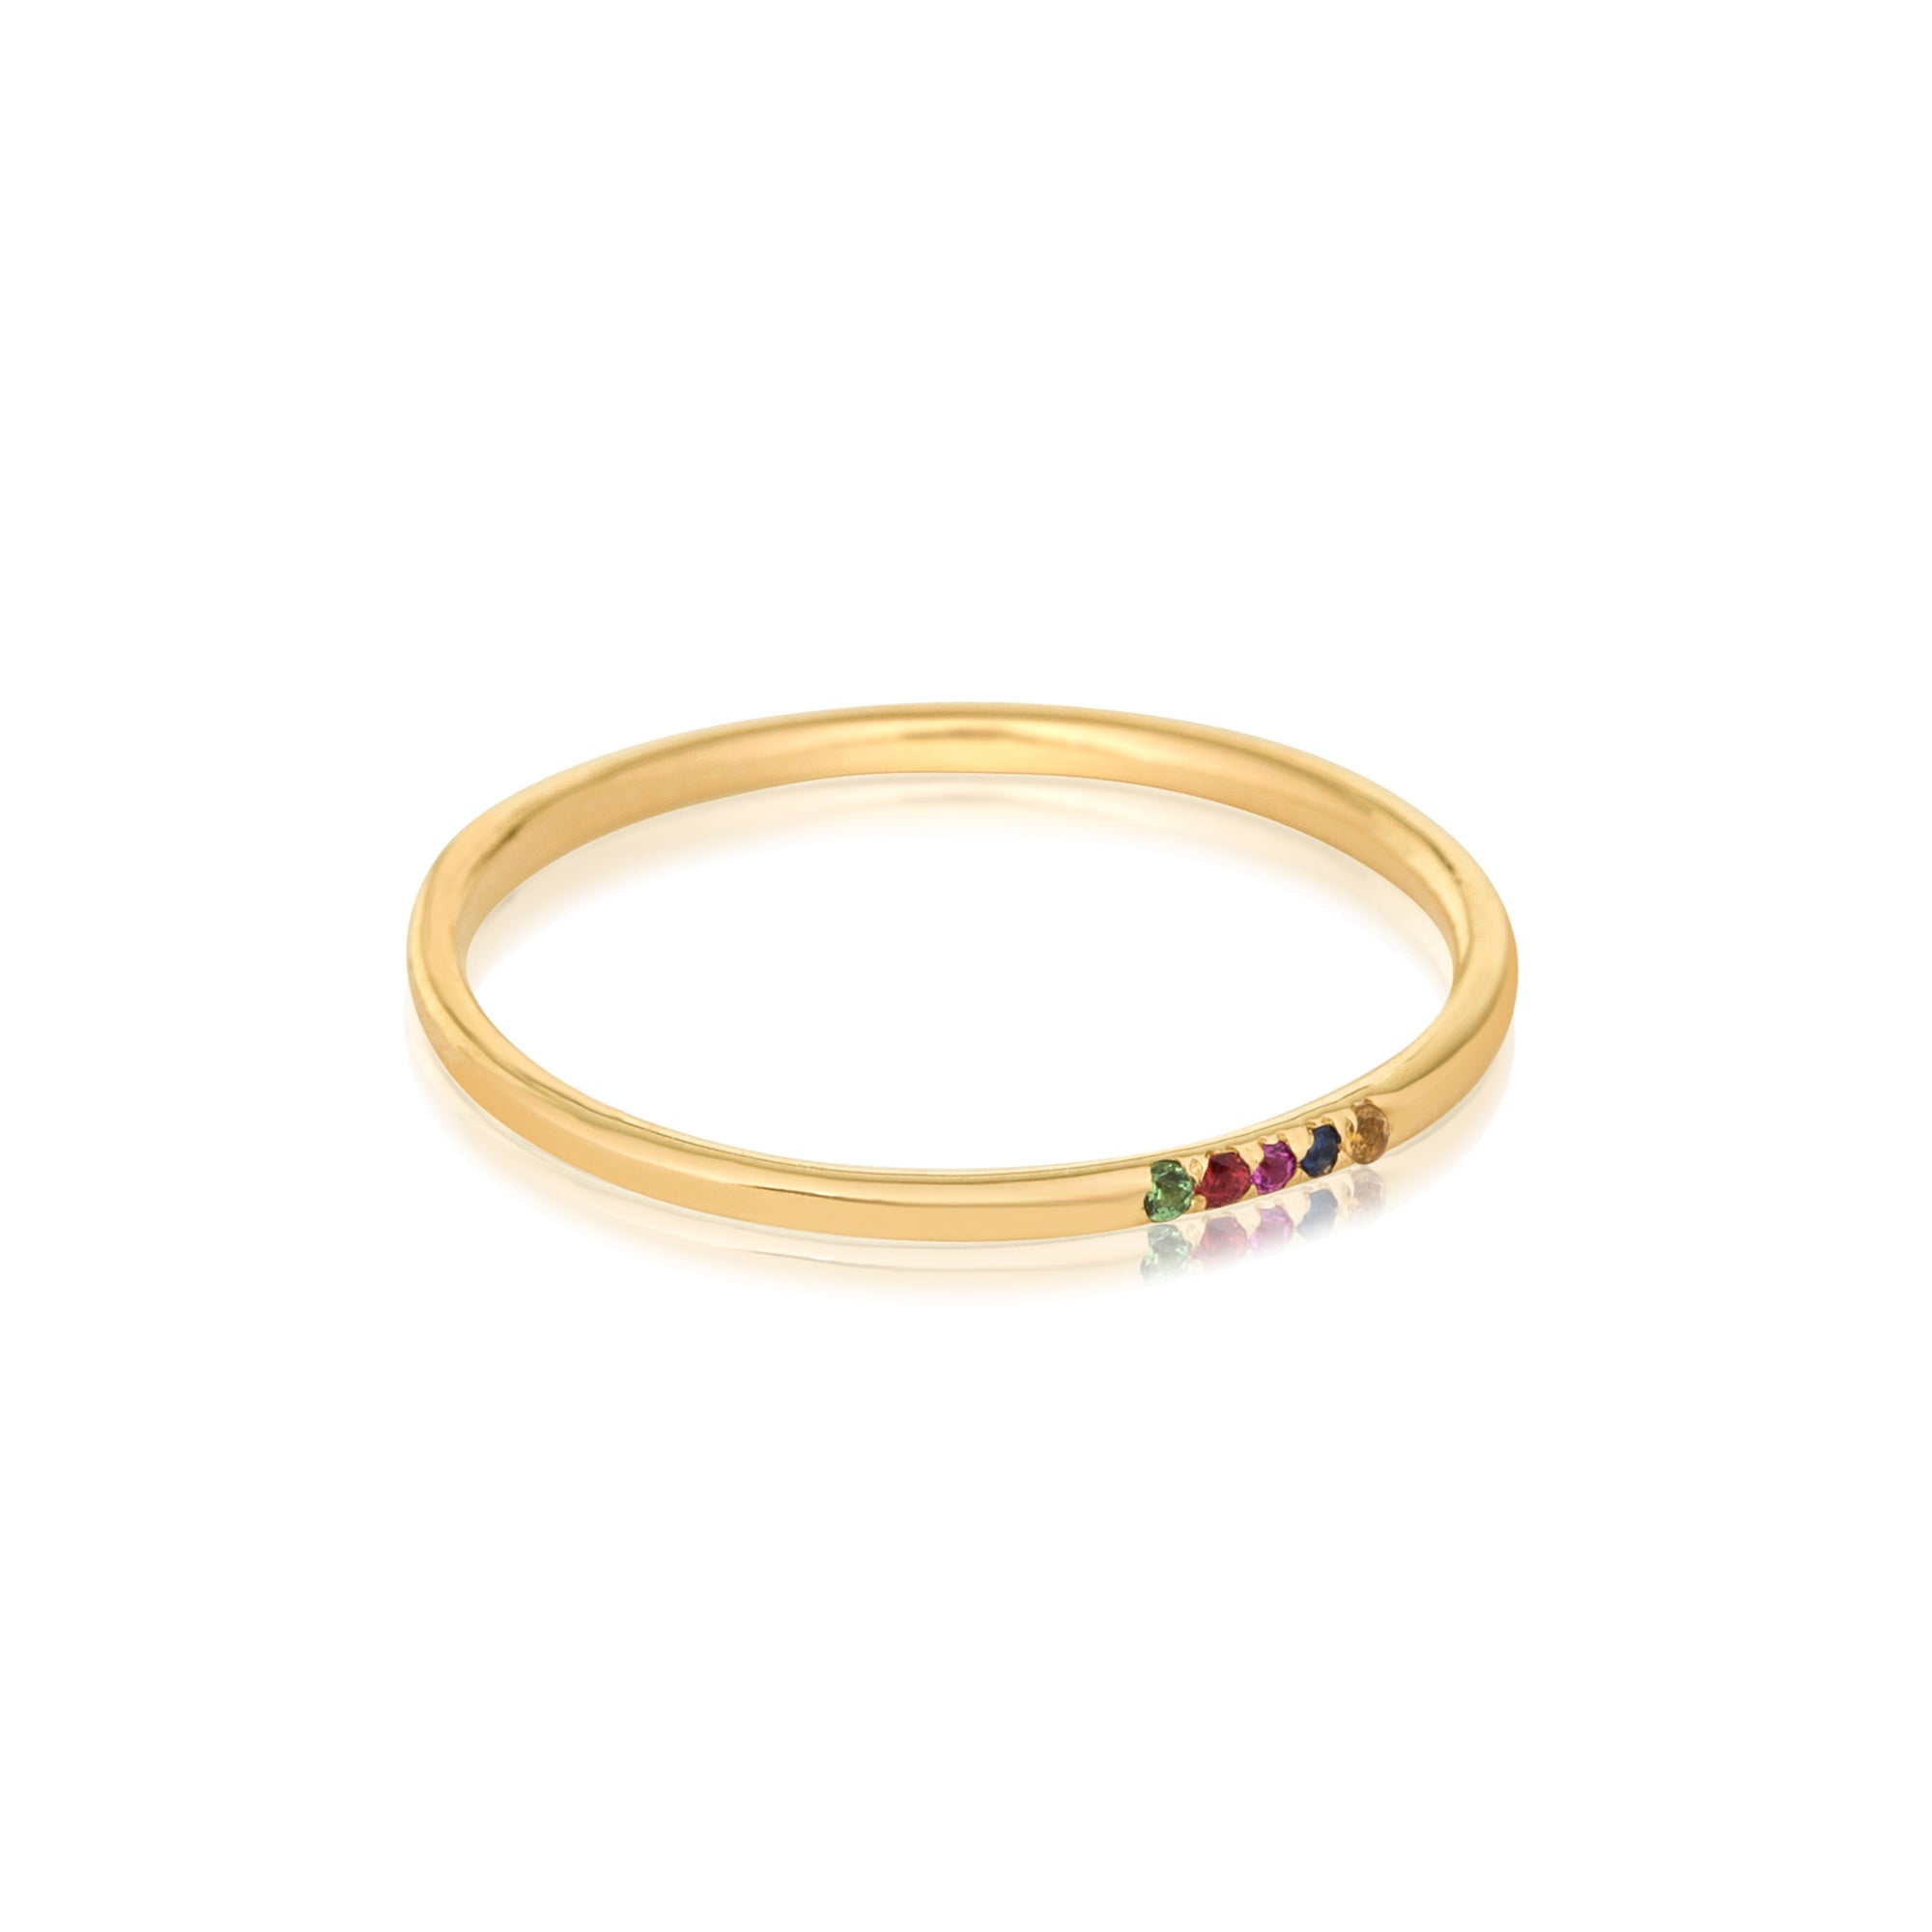 Rainbow Sapphire Pave Band - STONE & STRAND